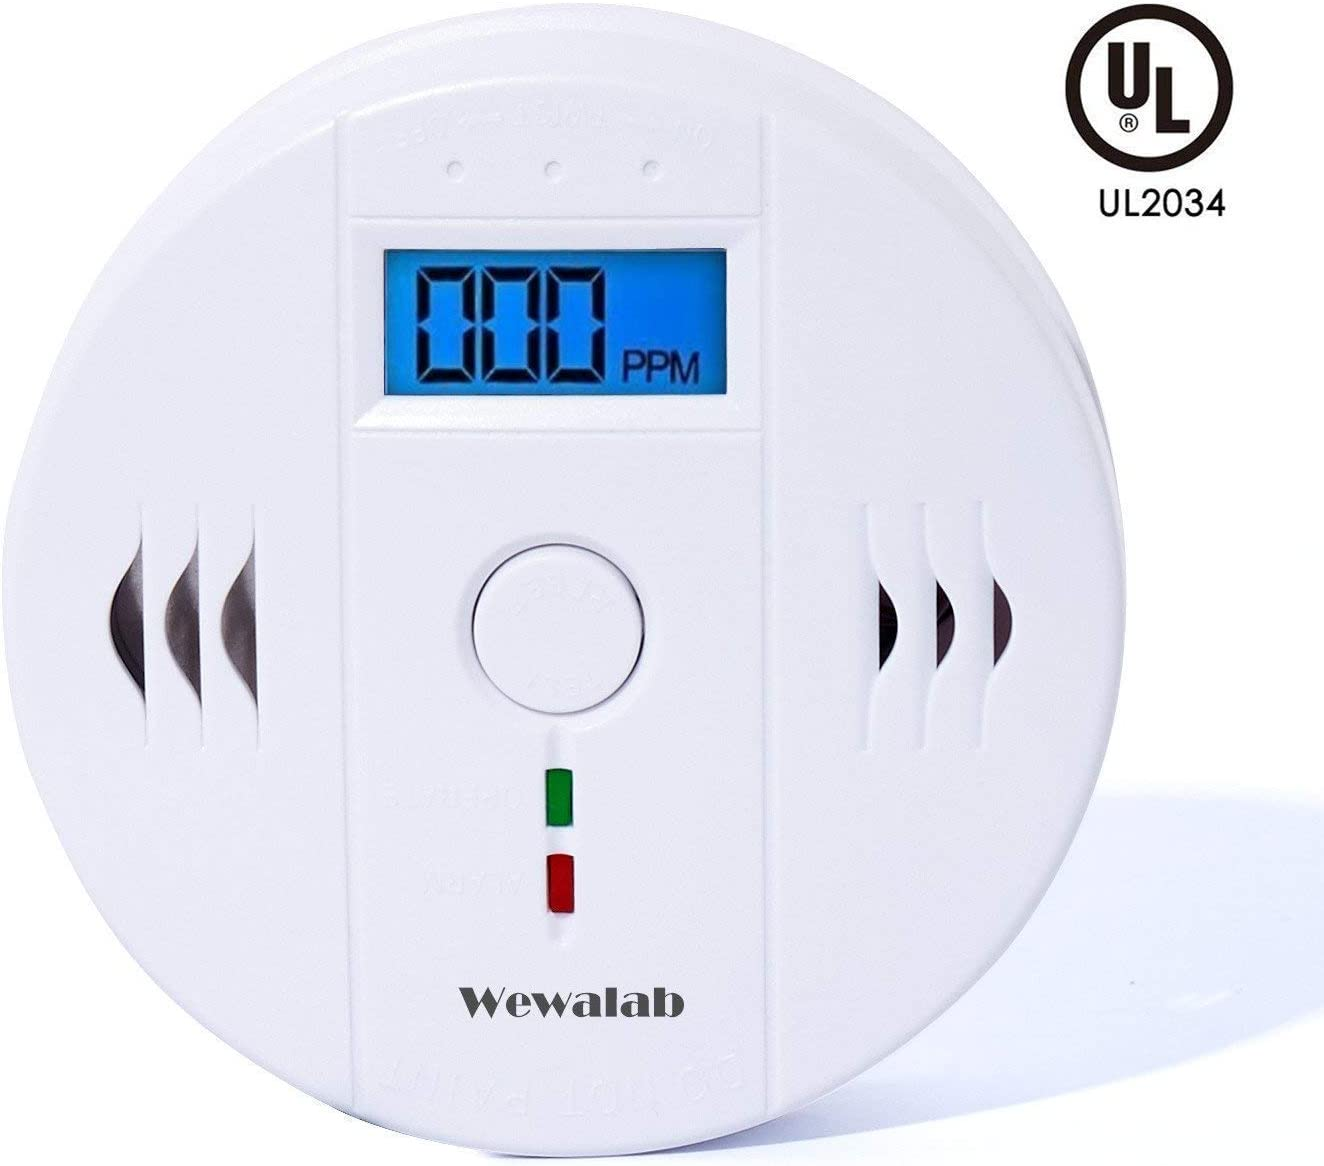 Wewalab Household Tester for Home Use, Alarm LCD Portable Security